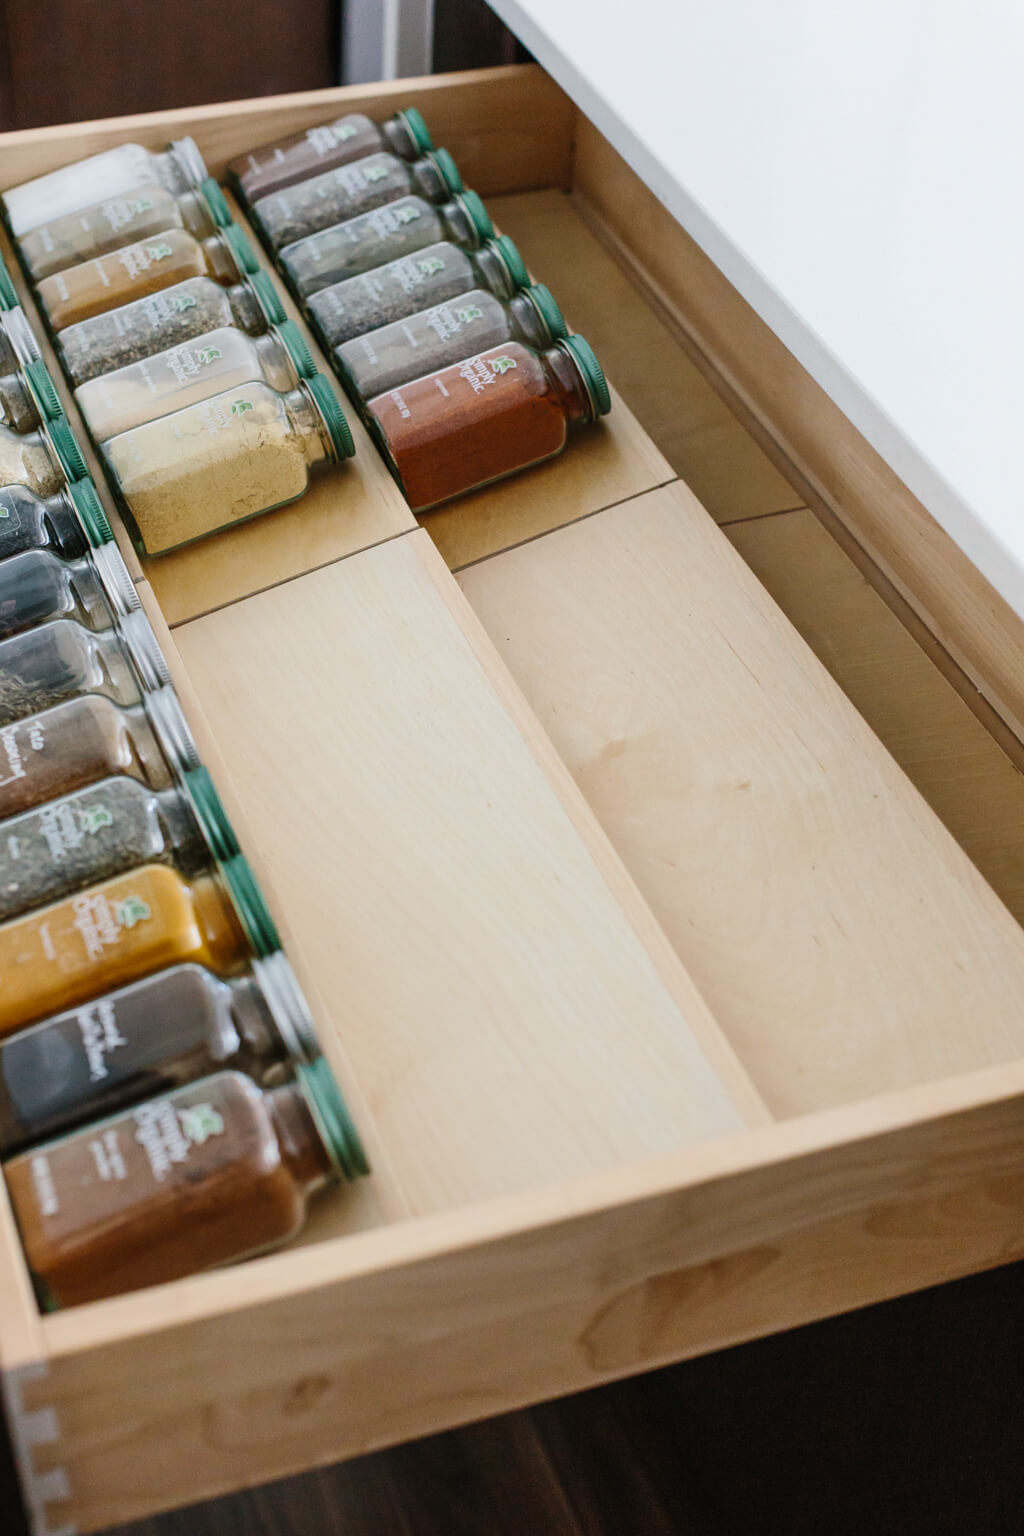 My spice drawer is pivotal to cooking healthy recipes. So today I'm sharing how I organize my spice drawer and giving you a few tips for dried spices. #SpiceOrganization #SpiceDrawer #SpiceRack #KitchenOrganization #KitchenIdeas